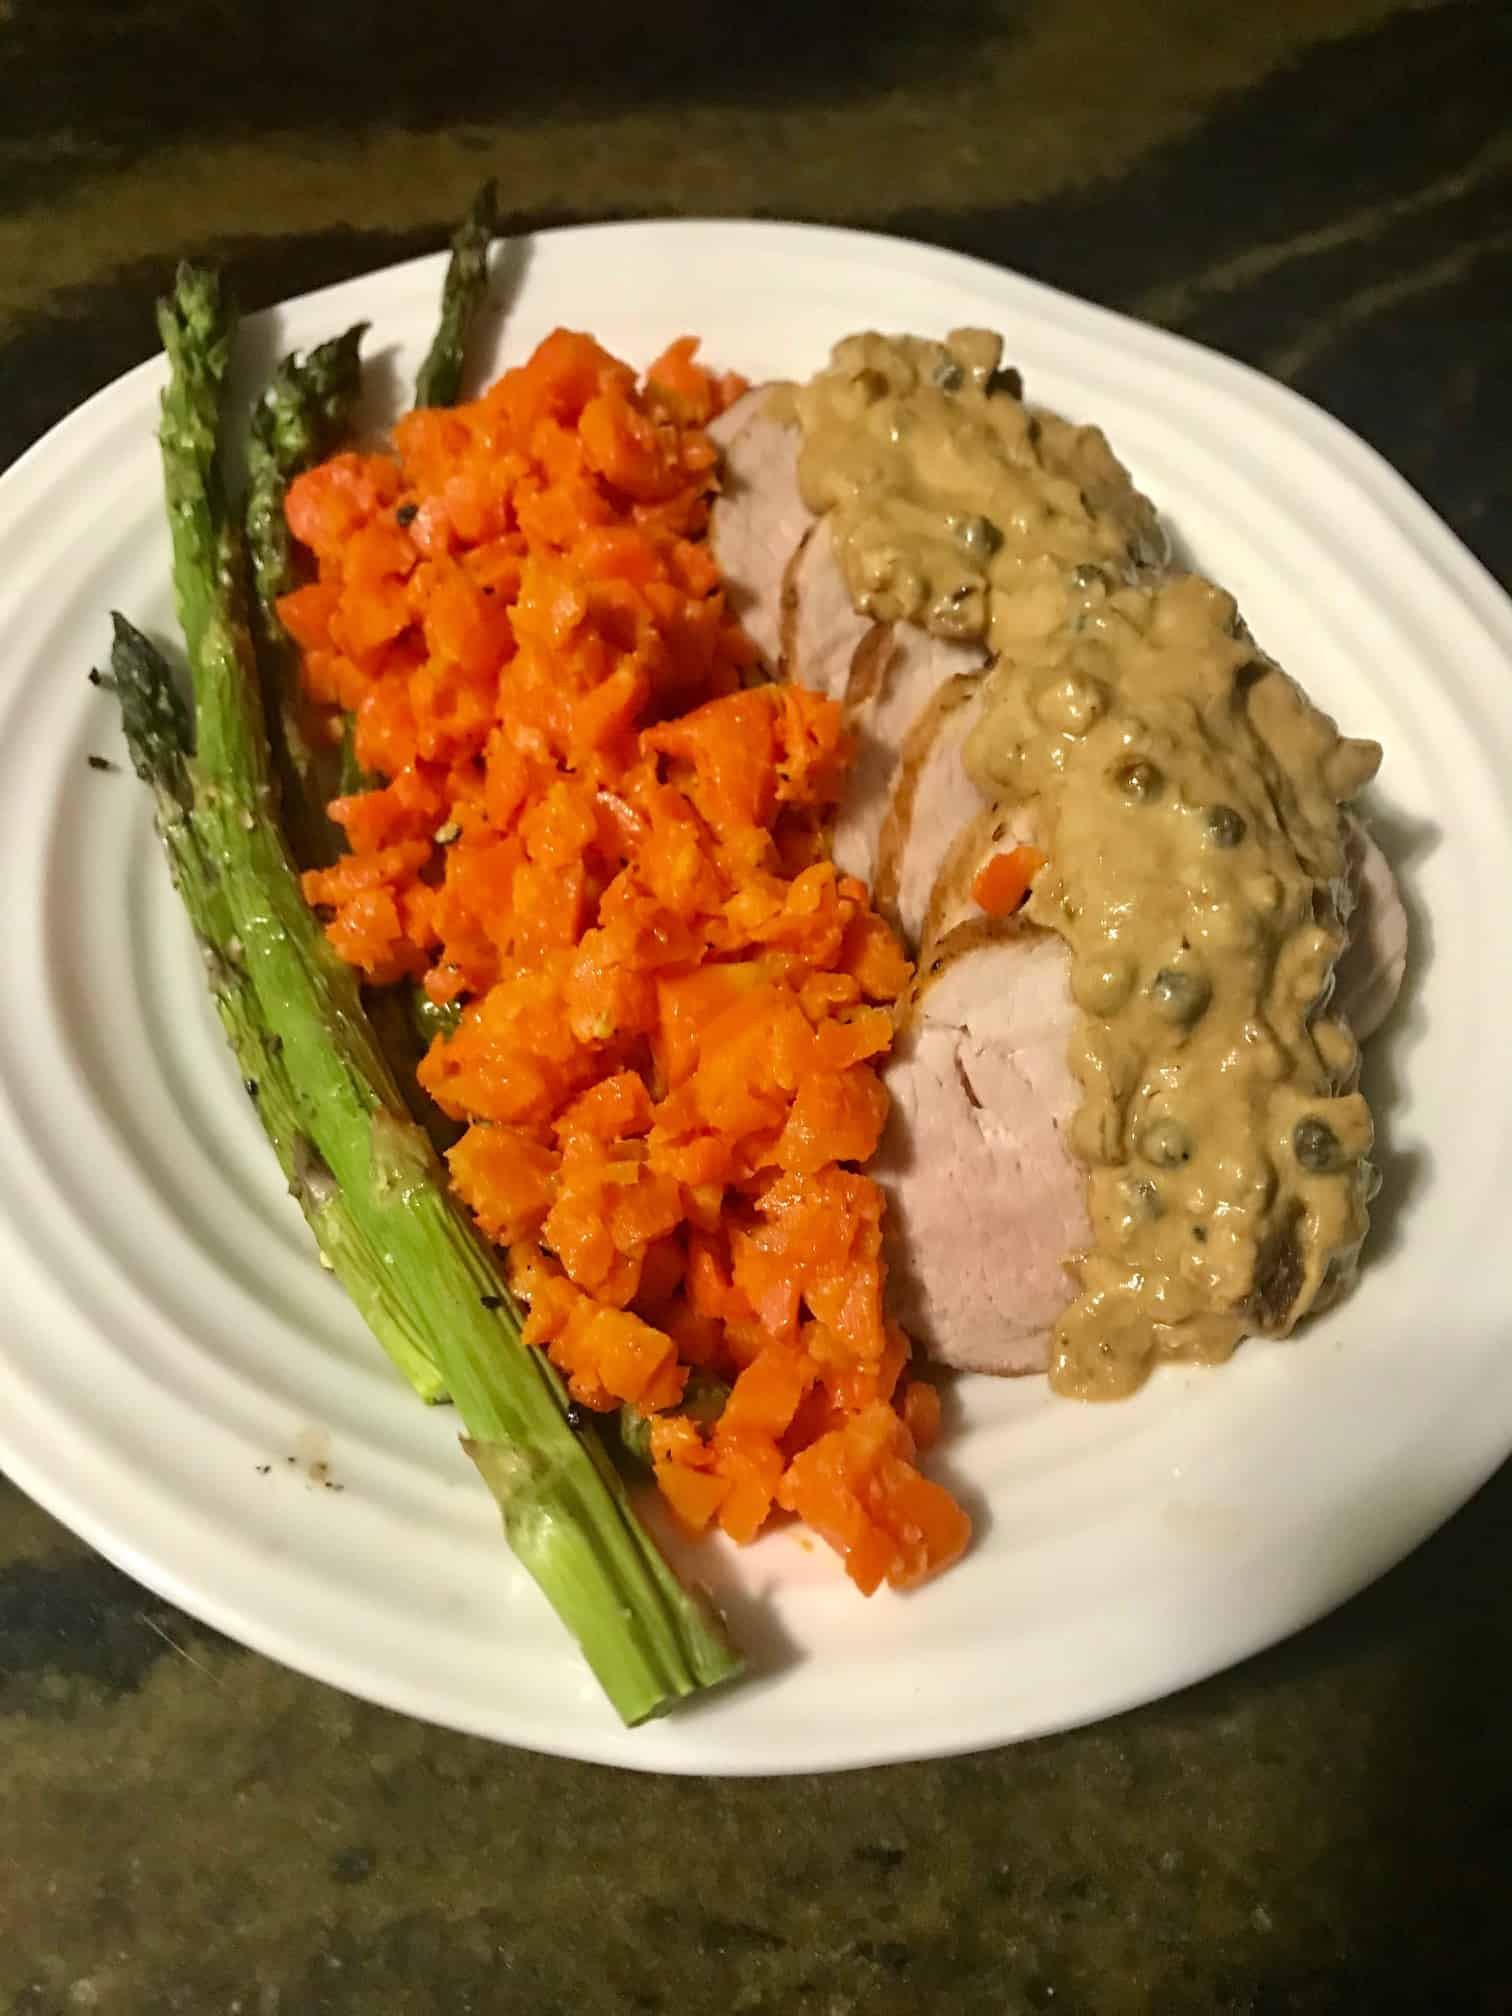 Home Chef Peppered Pork Tenderloin on plate with mashed carrots and asparagus